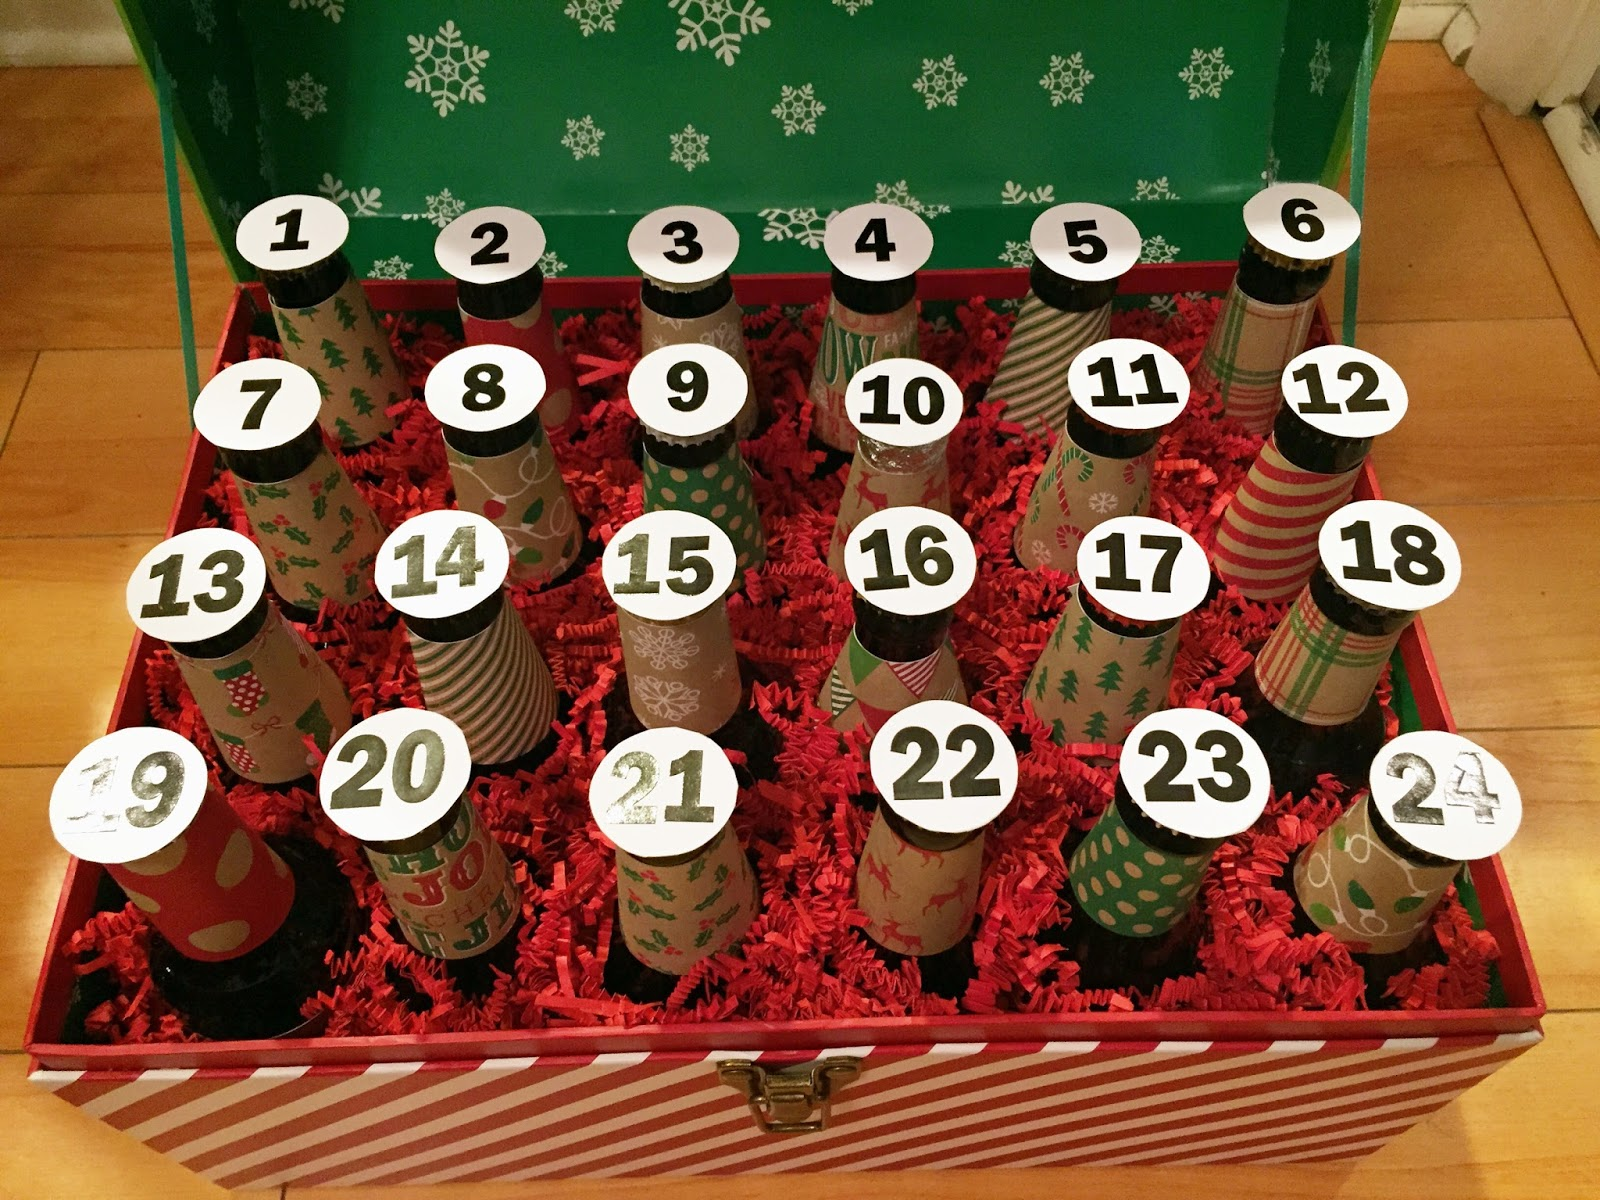 Chasin mason gifts for the husband diy beer advent calendar chasin mason beer advent calendar solutioingenieria Images